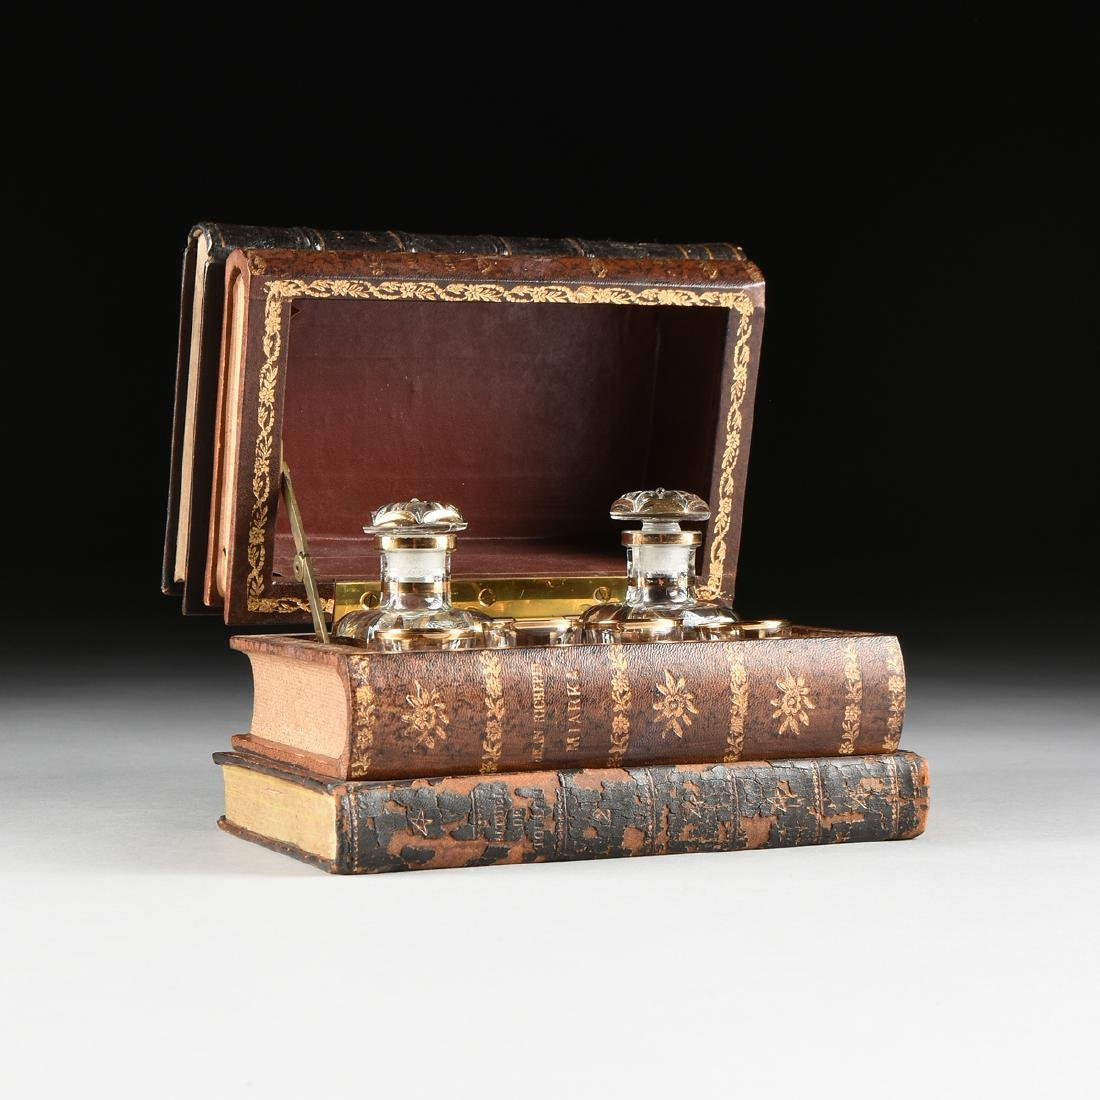 A FRENCH BOOK FORM FITTED TANTALUS, CIRCA 1920-1950,